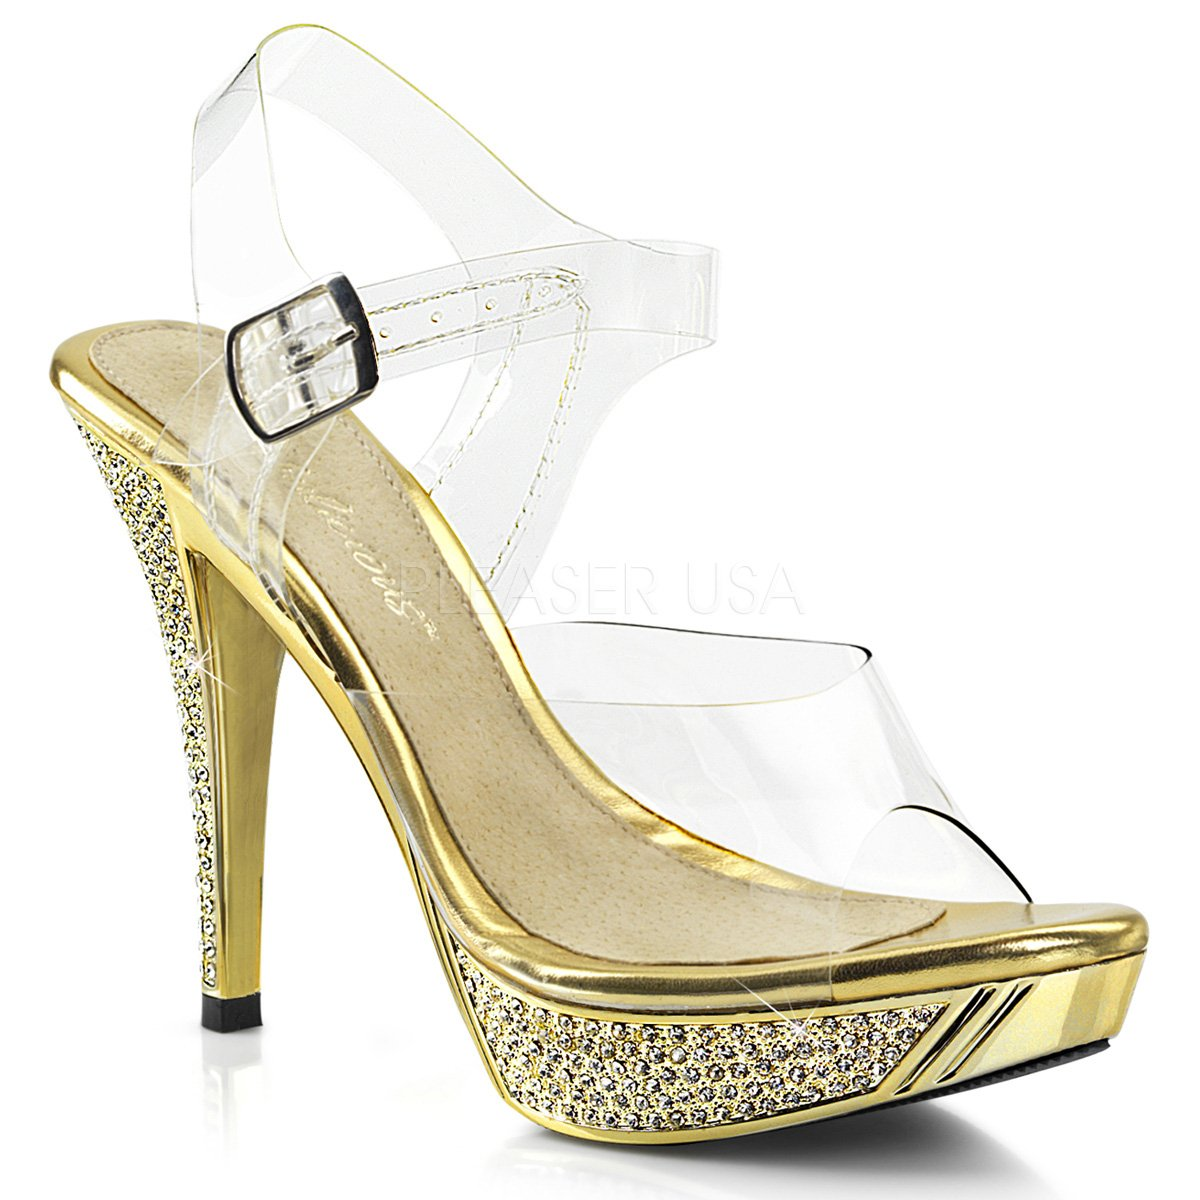 Fabulicious Women's Elegant 408 Dress Sandal B072L8C8Q3 5 B(M) US|Clr/Gold Chrome